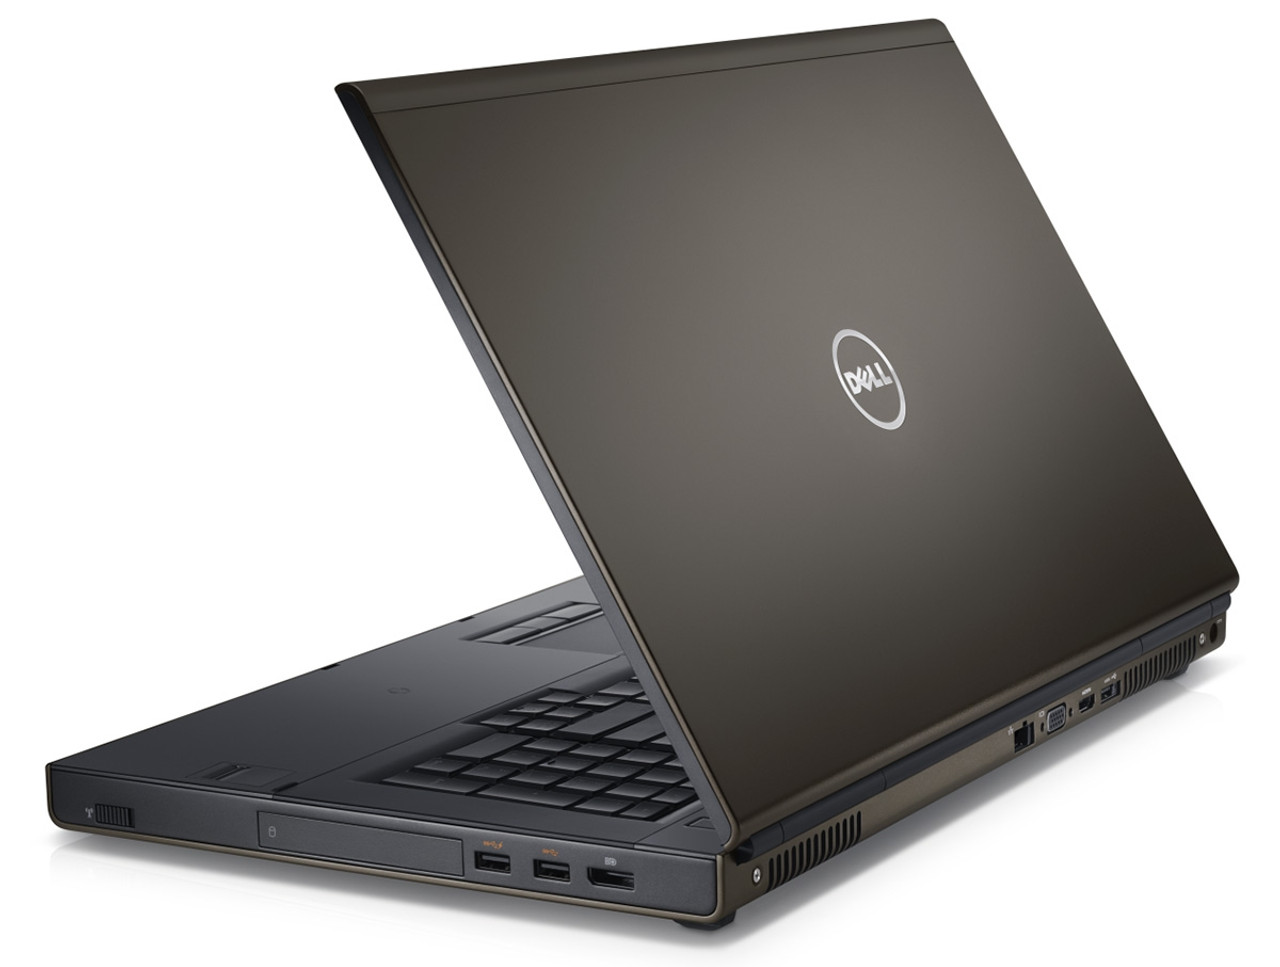 Dell Precision M6600 Laptop Quad Core i7 2.4GHz, 32GB Ram, 250GB SSD, DVD-RW, Windows 10 Pro 64 Notebook